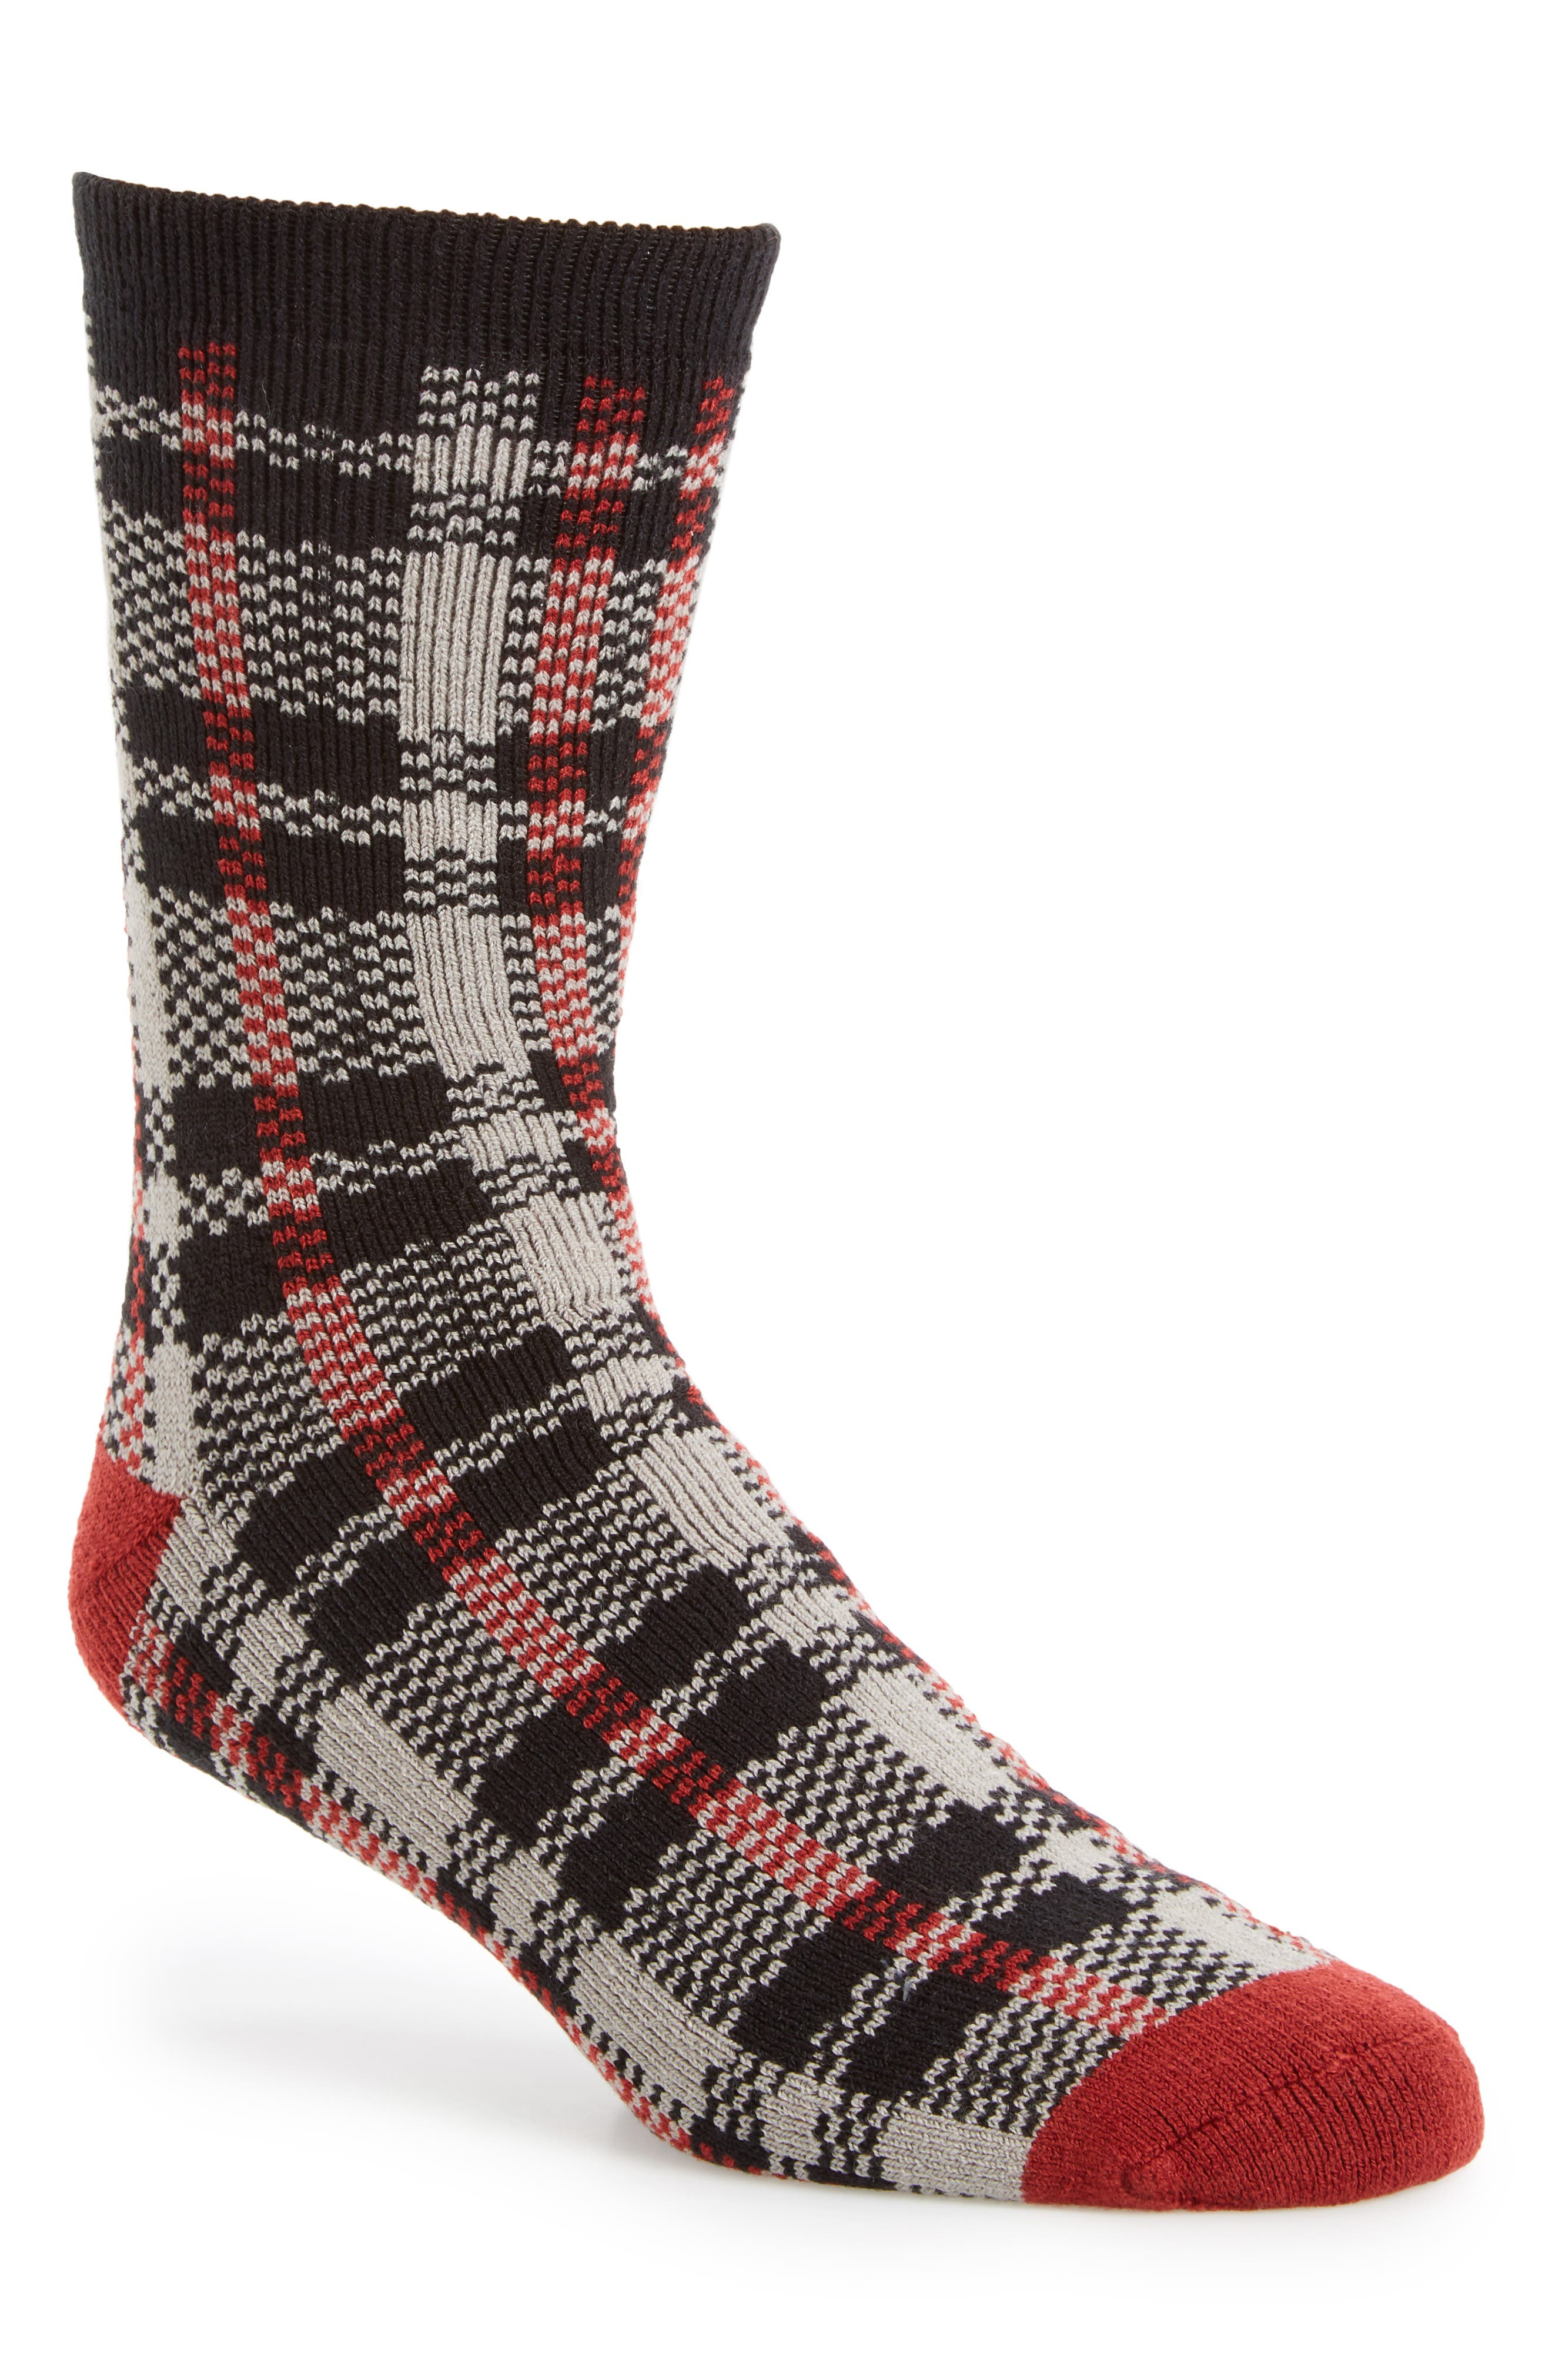 Plaid Socks,                             Main thumbnail 1, color,